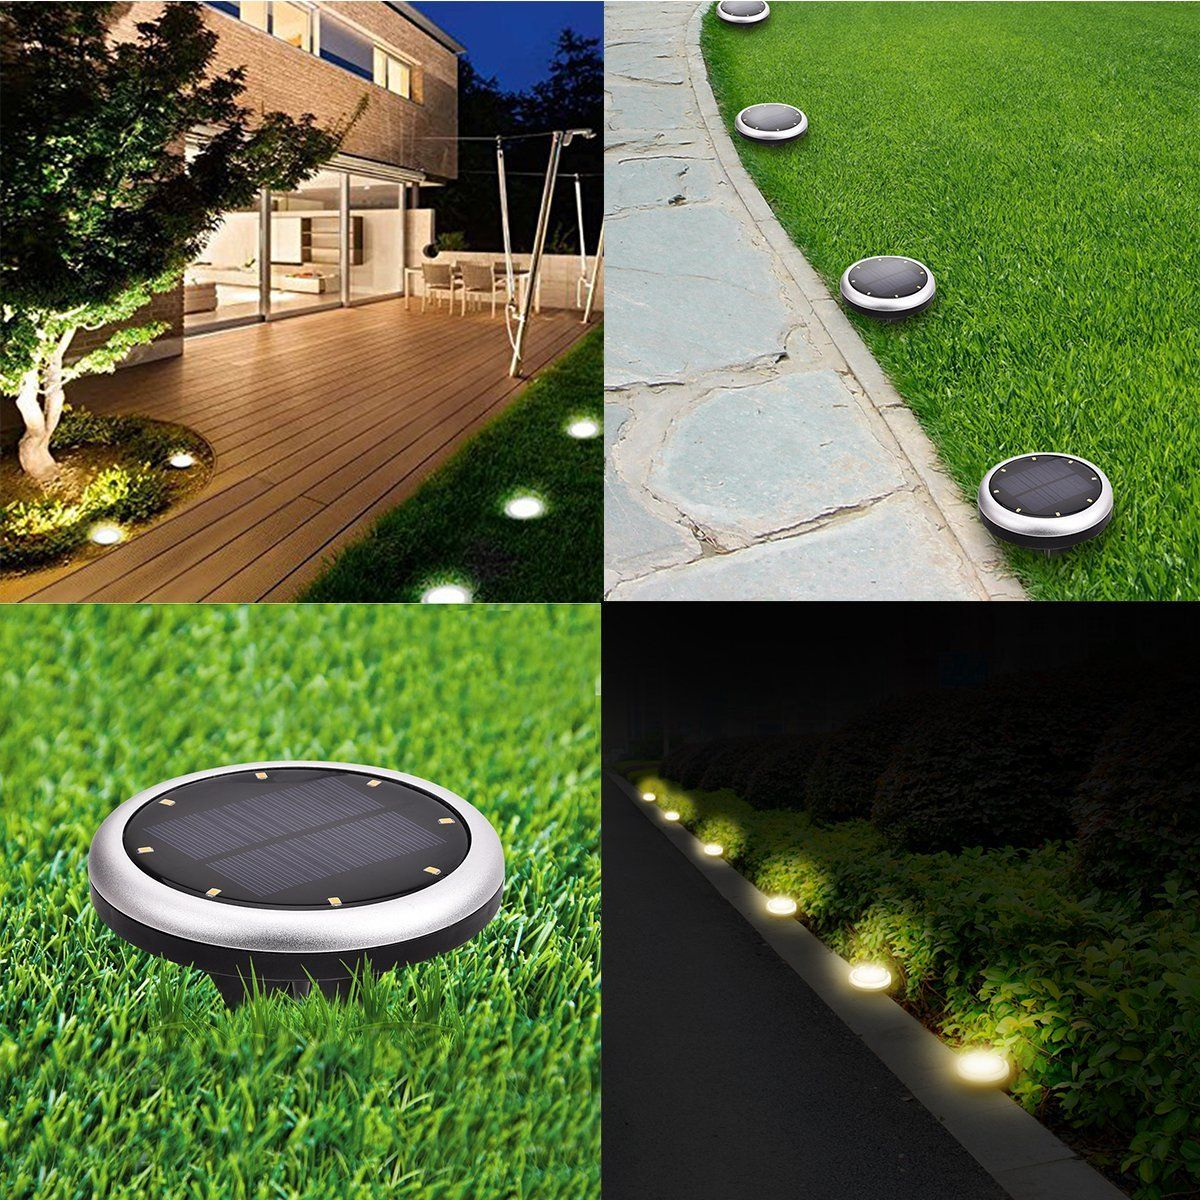 New Arrival Solar Ground Led Light 8 Leds Supper Bright Perfect For Garden Lawn Yard Ed